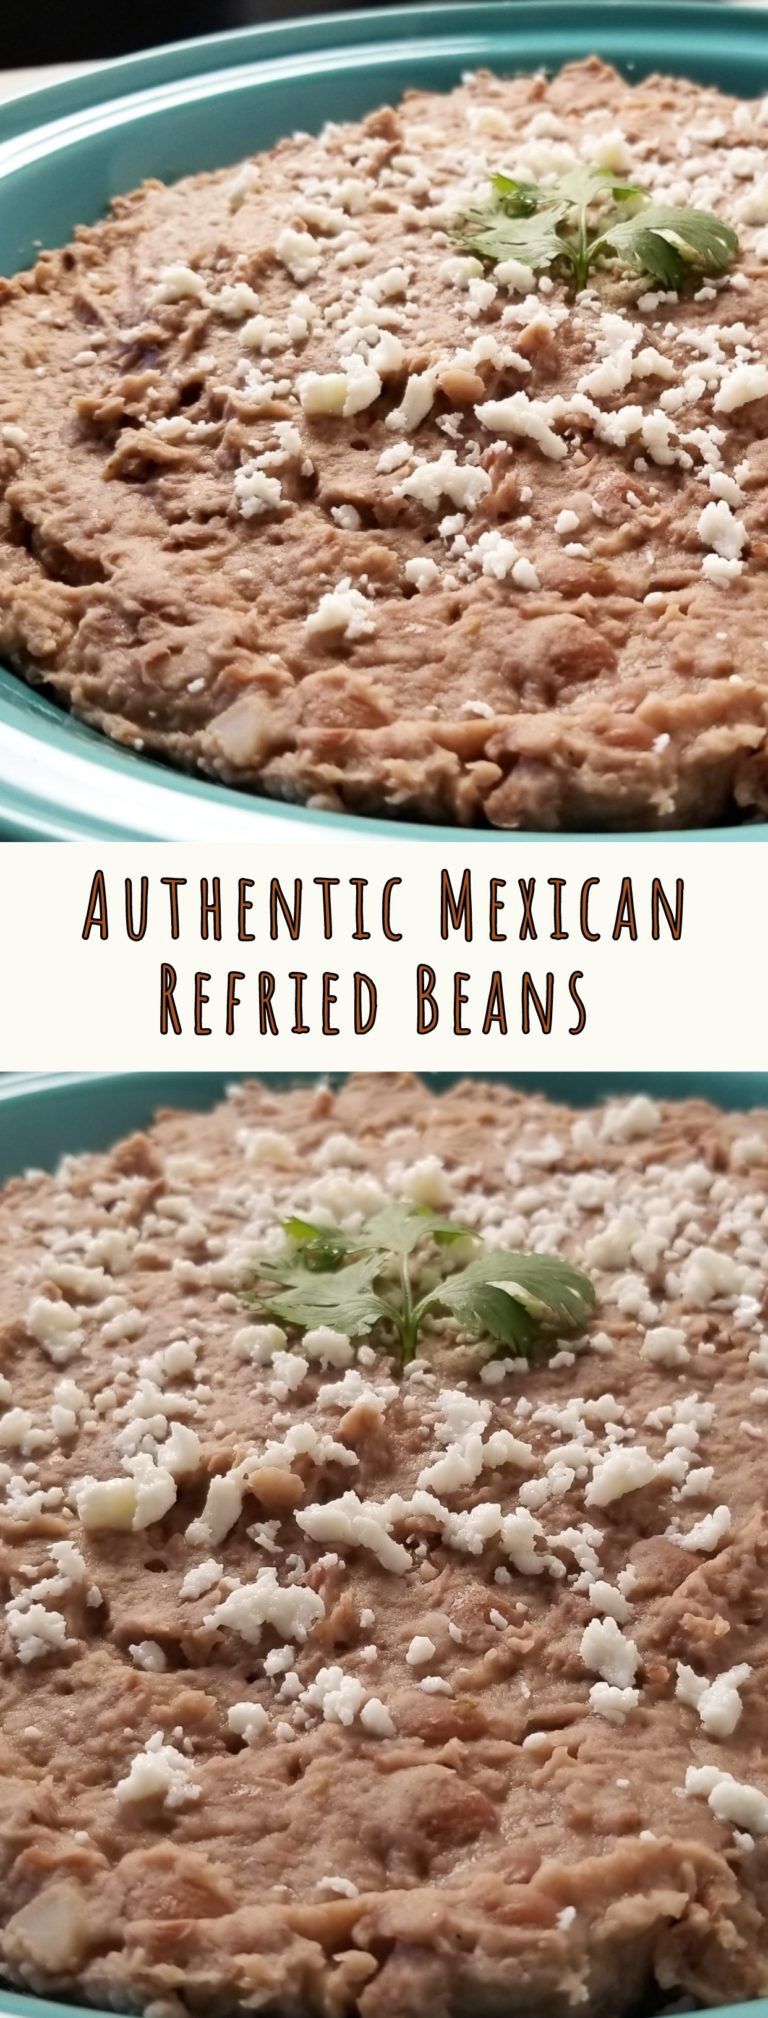 Authentic Mexican Refried Beans   Amanda Cooks & Styles